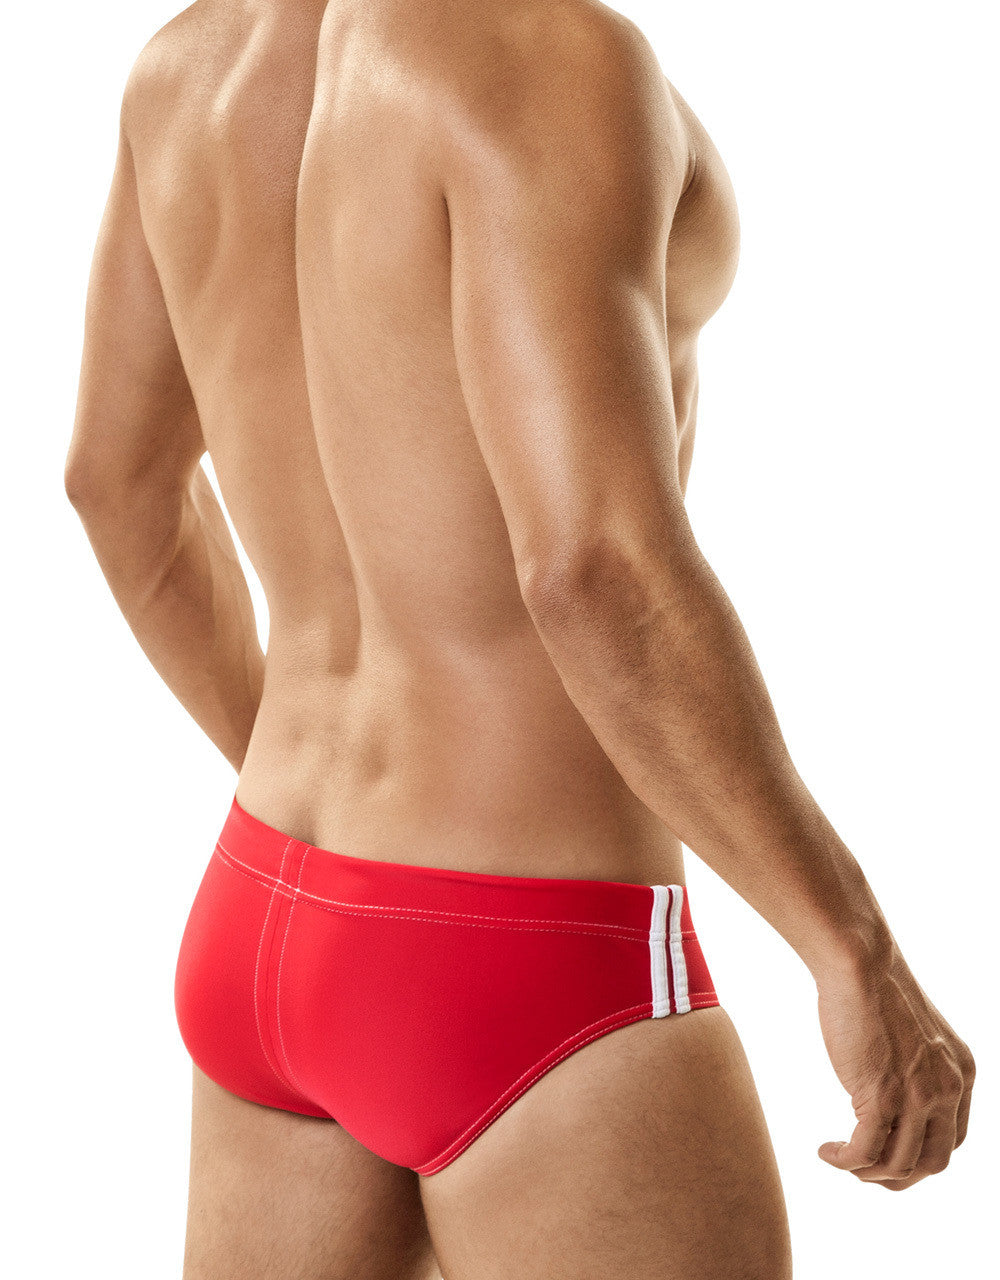 WildmanT Sport Bikini Swim w/Ball Lifter® Cock-Ring Red - Big Penis Underwear, WildmanT - WildmanT